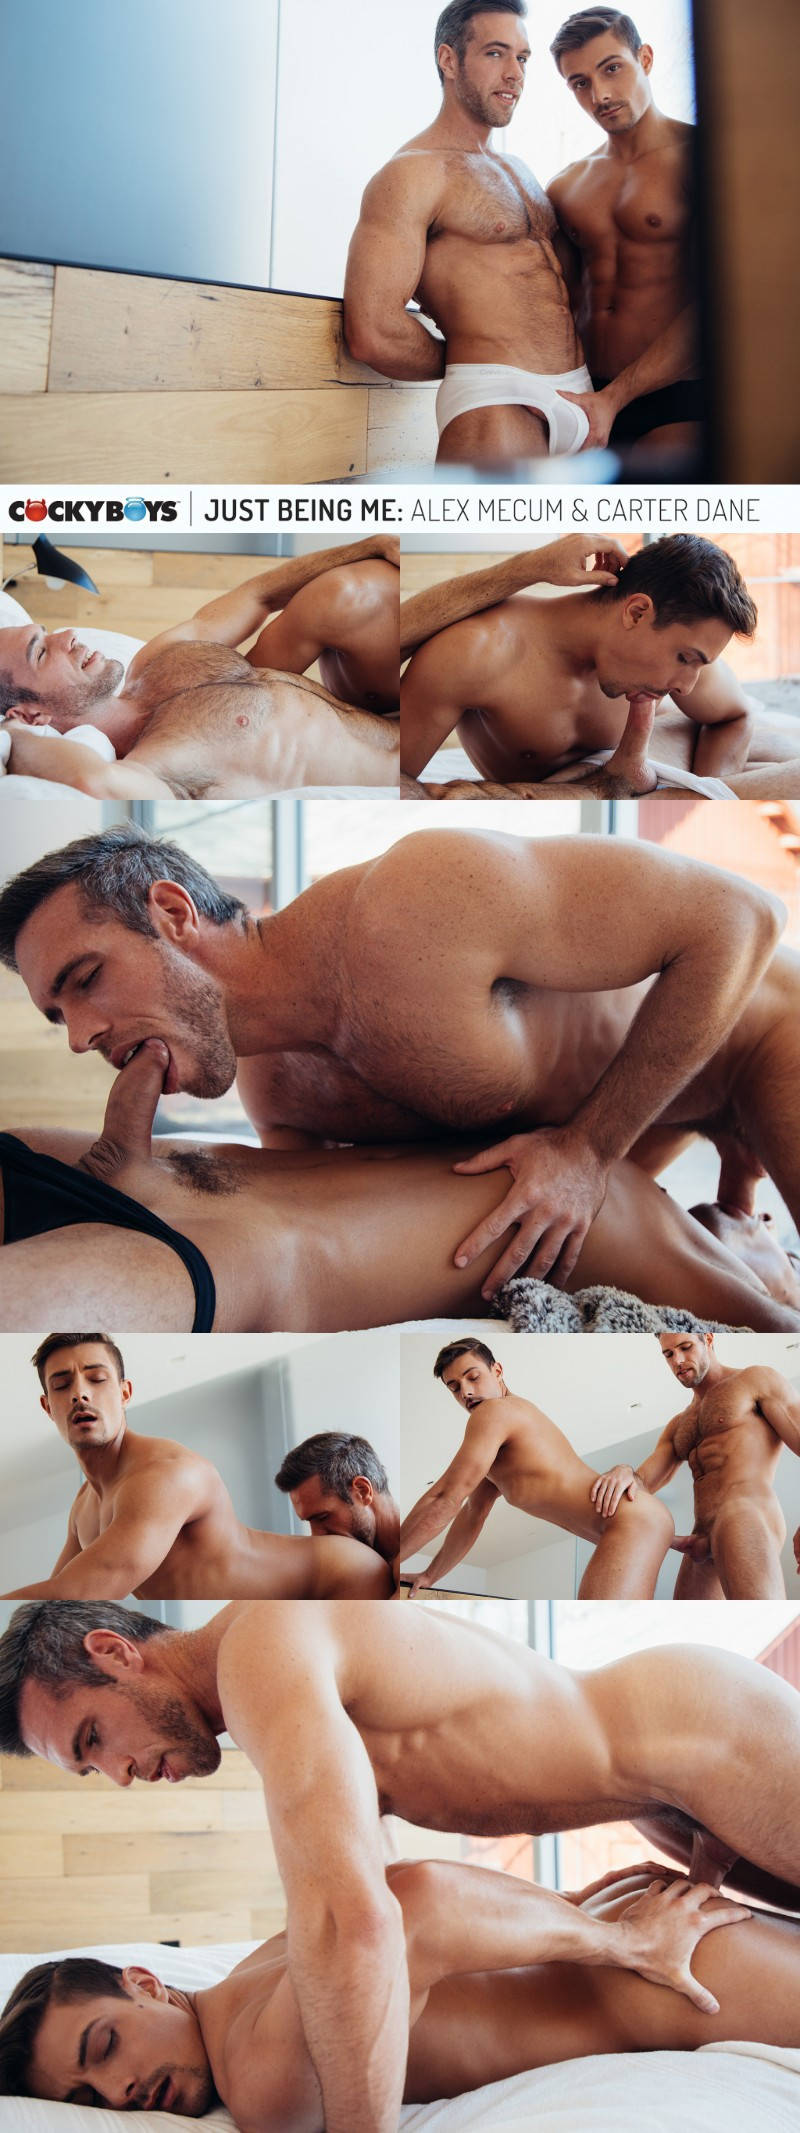 New Couple Alex Mecum & Carter Dane Talk About Their Relationship Before Barebacking